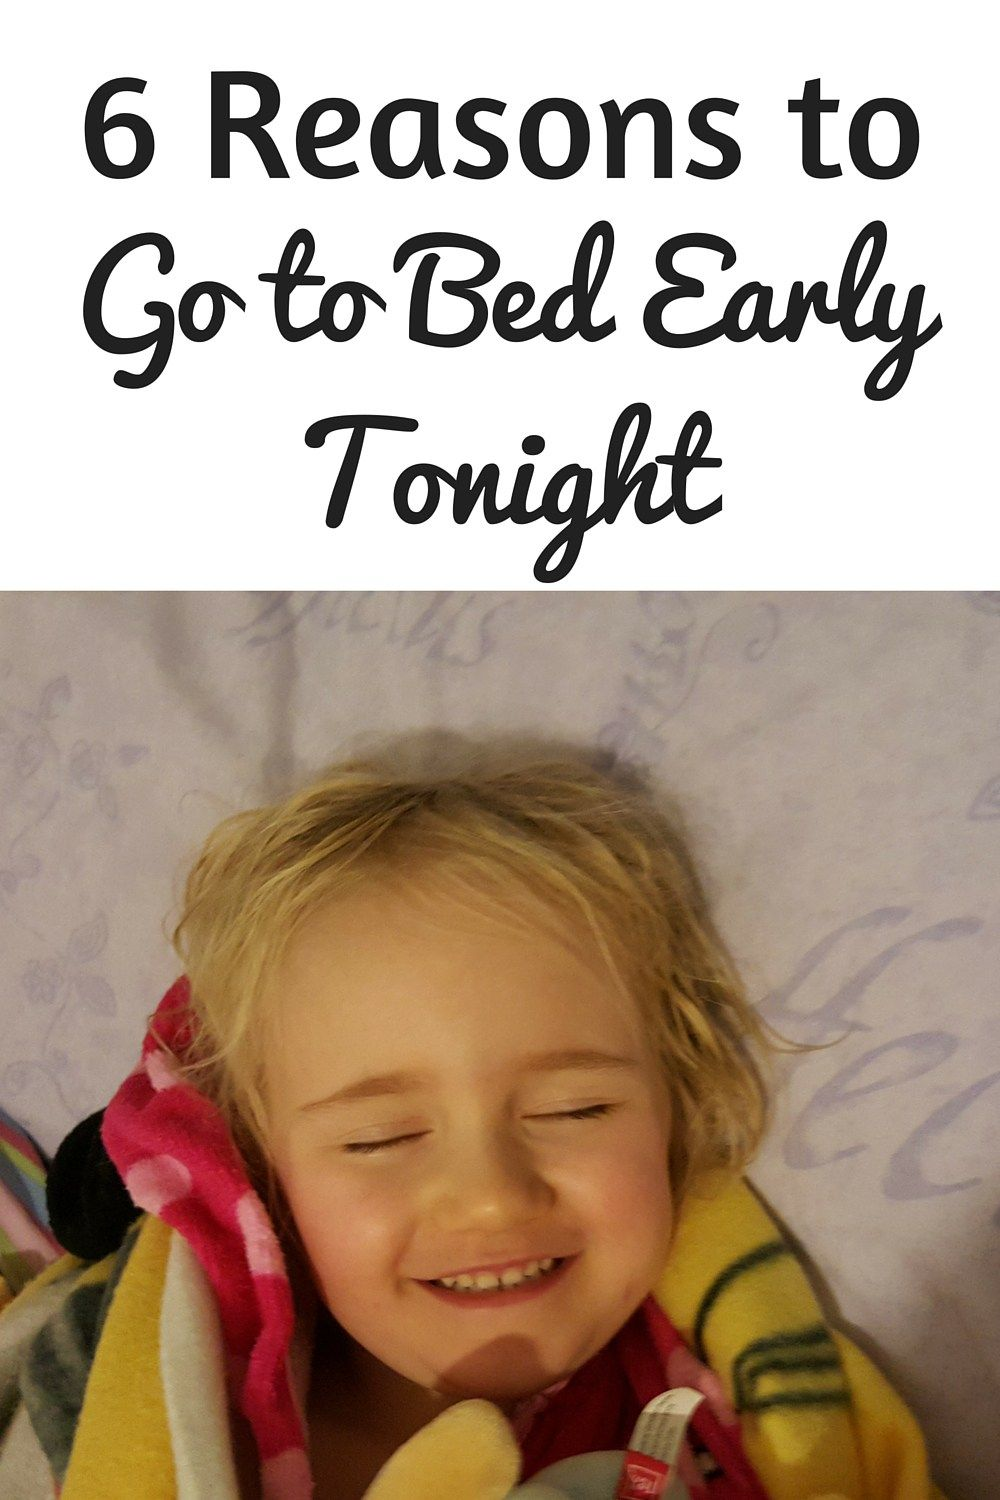 6 Reasons to go to Bed Early Tonight Go to bed early